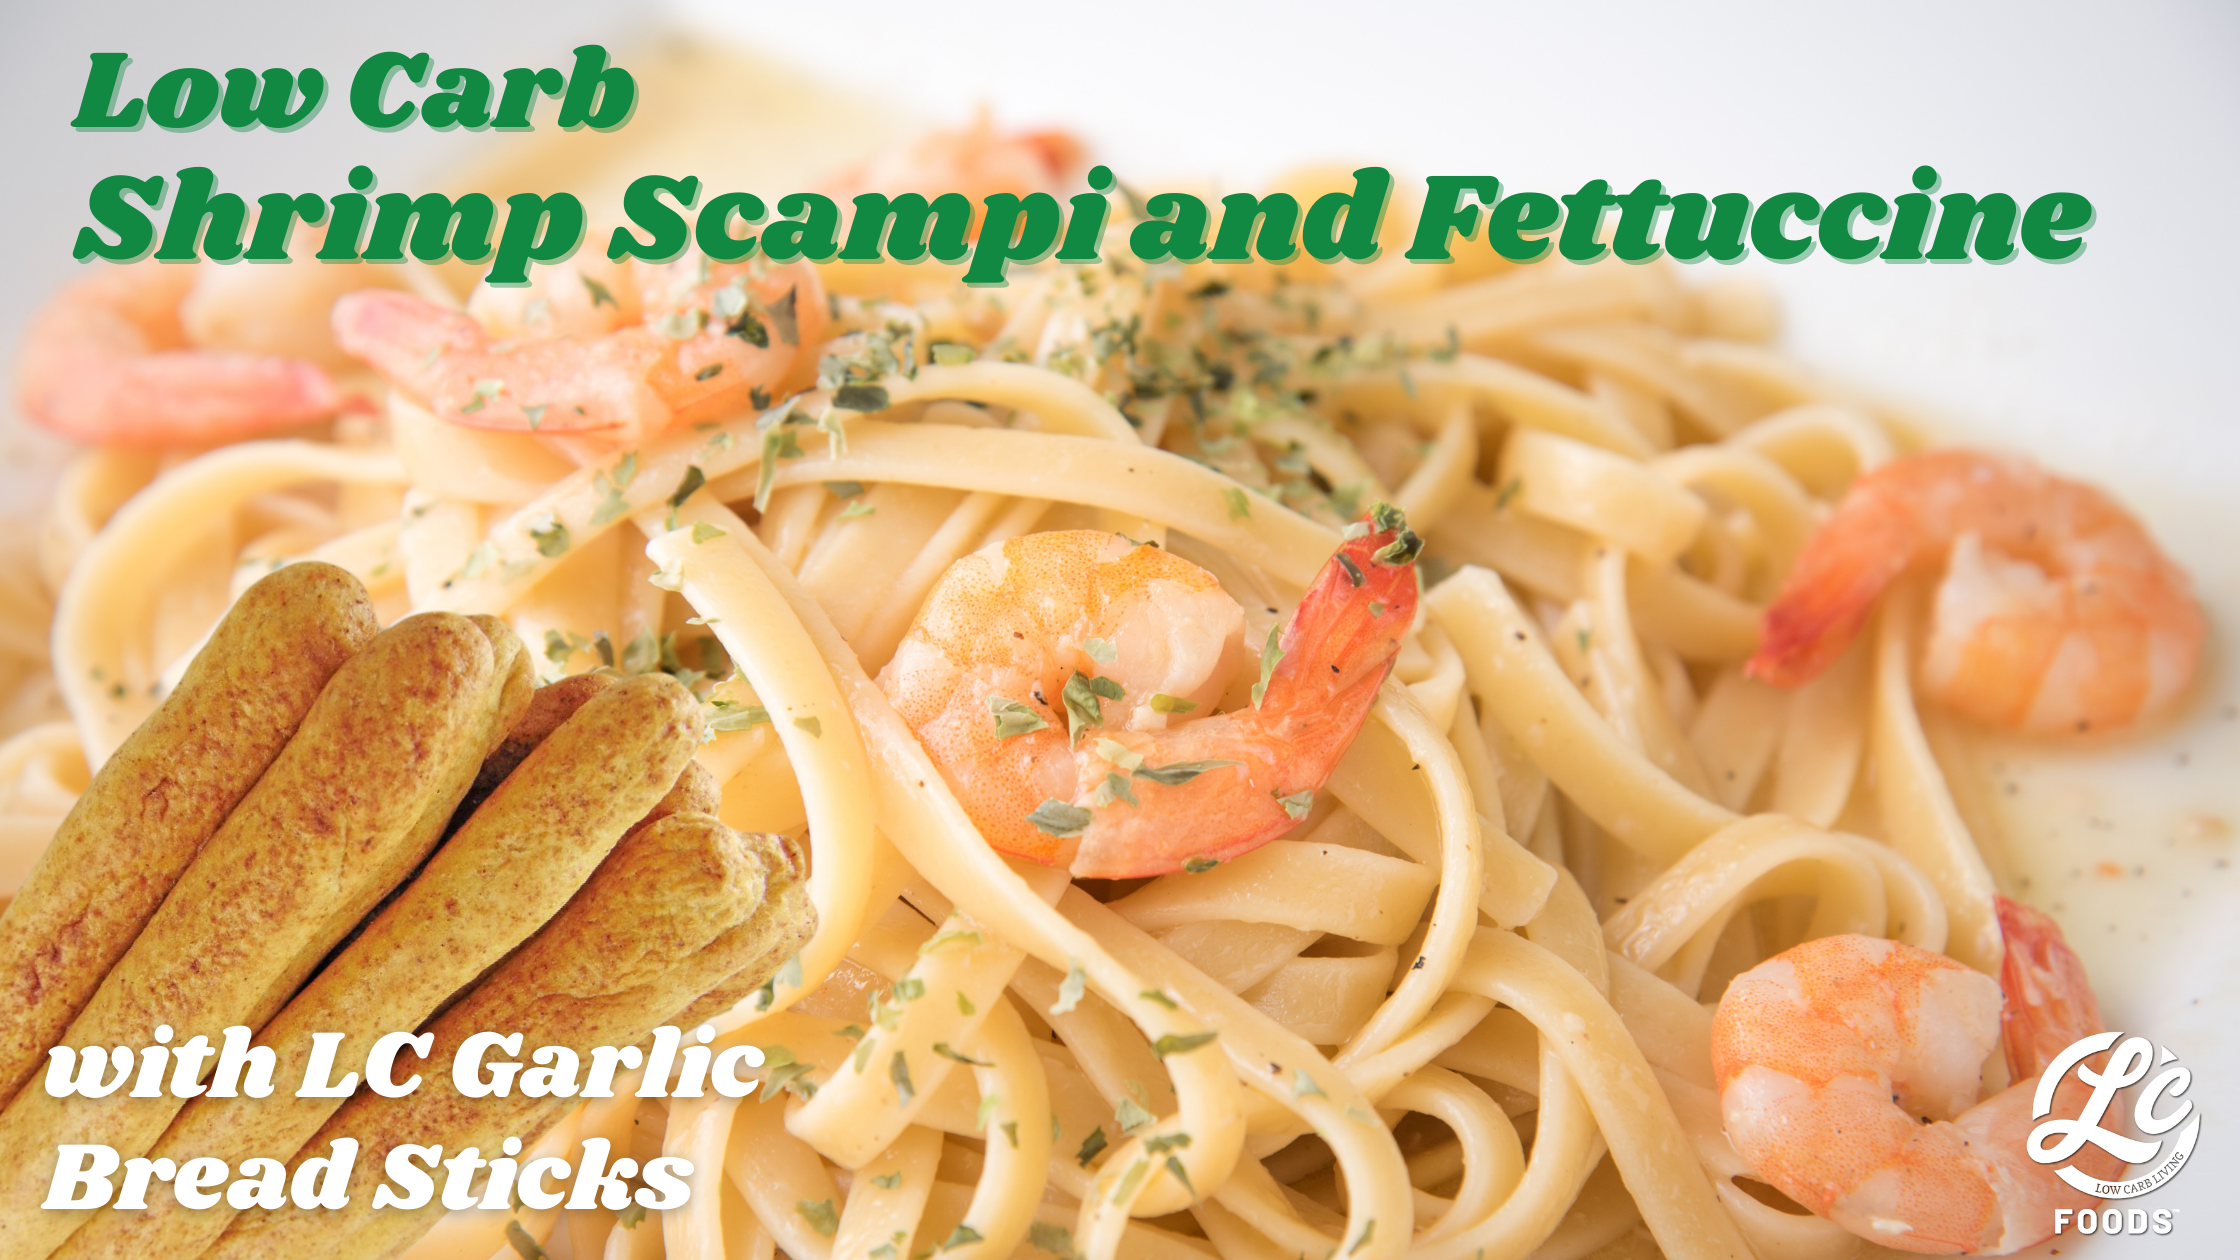 Thumbnail for Low Carb Shrimp Scampi and Fettuccine